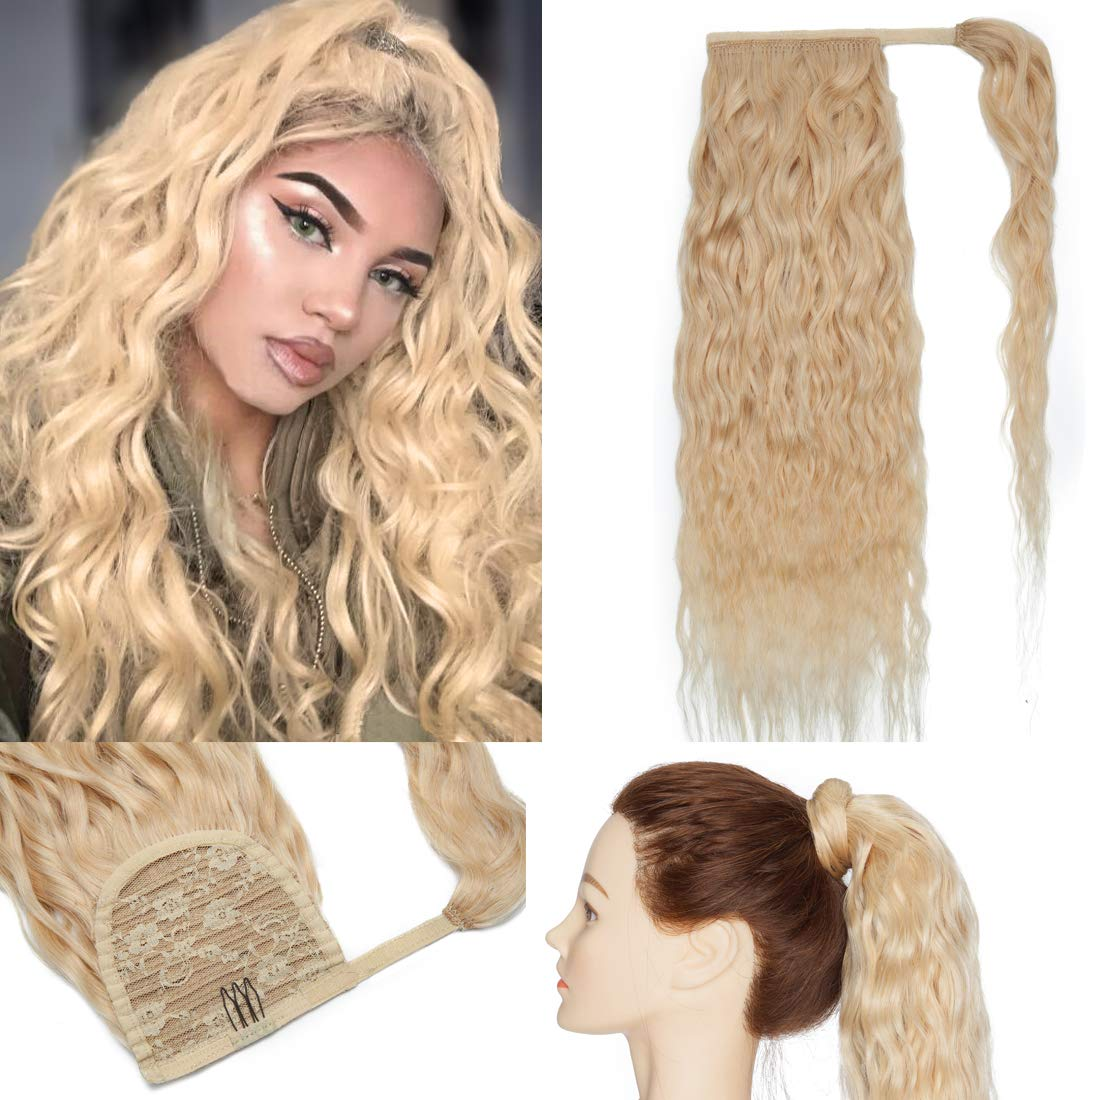 S-noilite Ponytail Extension 2021new shipping free Clip in Max 75% OFF Human A Corn Hair Wavy Wrap